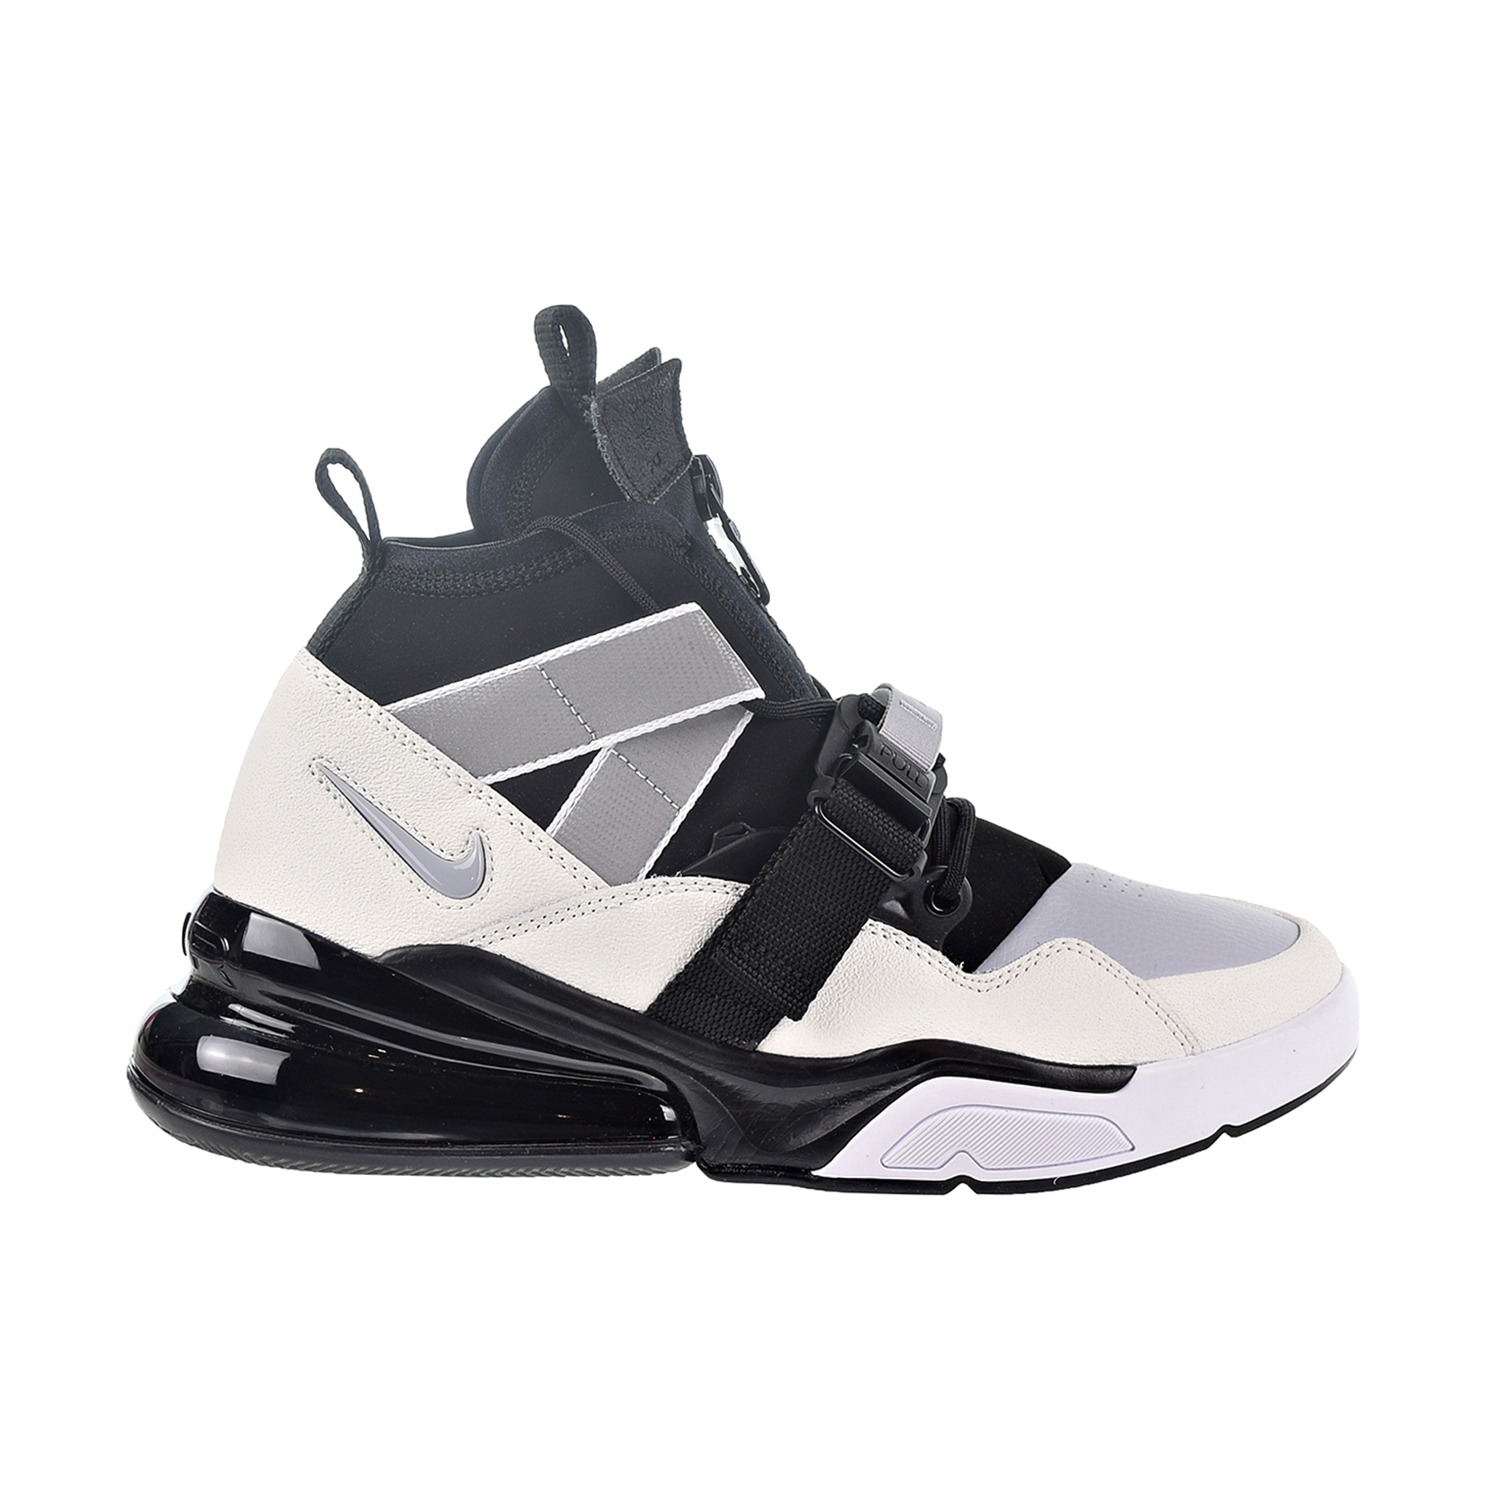 quality design ec218 63ffd Details about Nike Air Force 270 Utility Men's Shoes Black/Sail/Wolf  Grey/White AQ0572-003